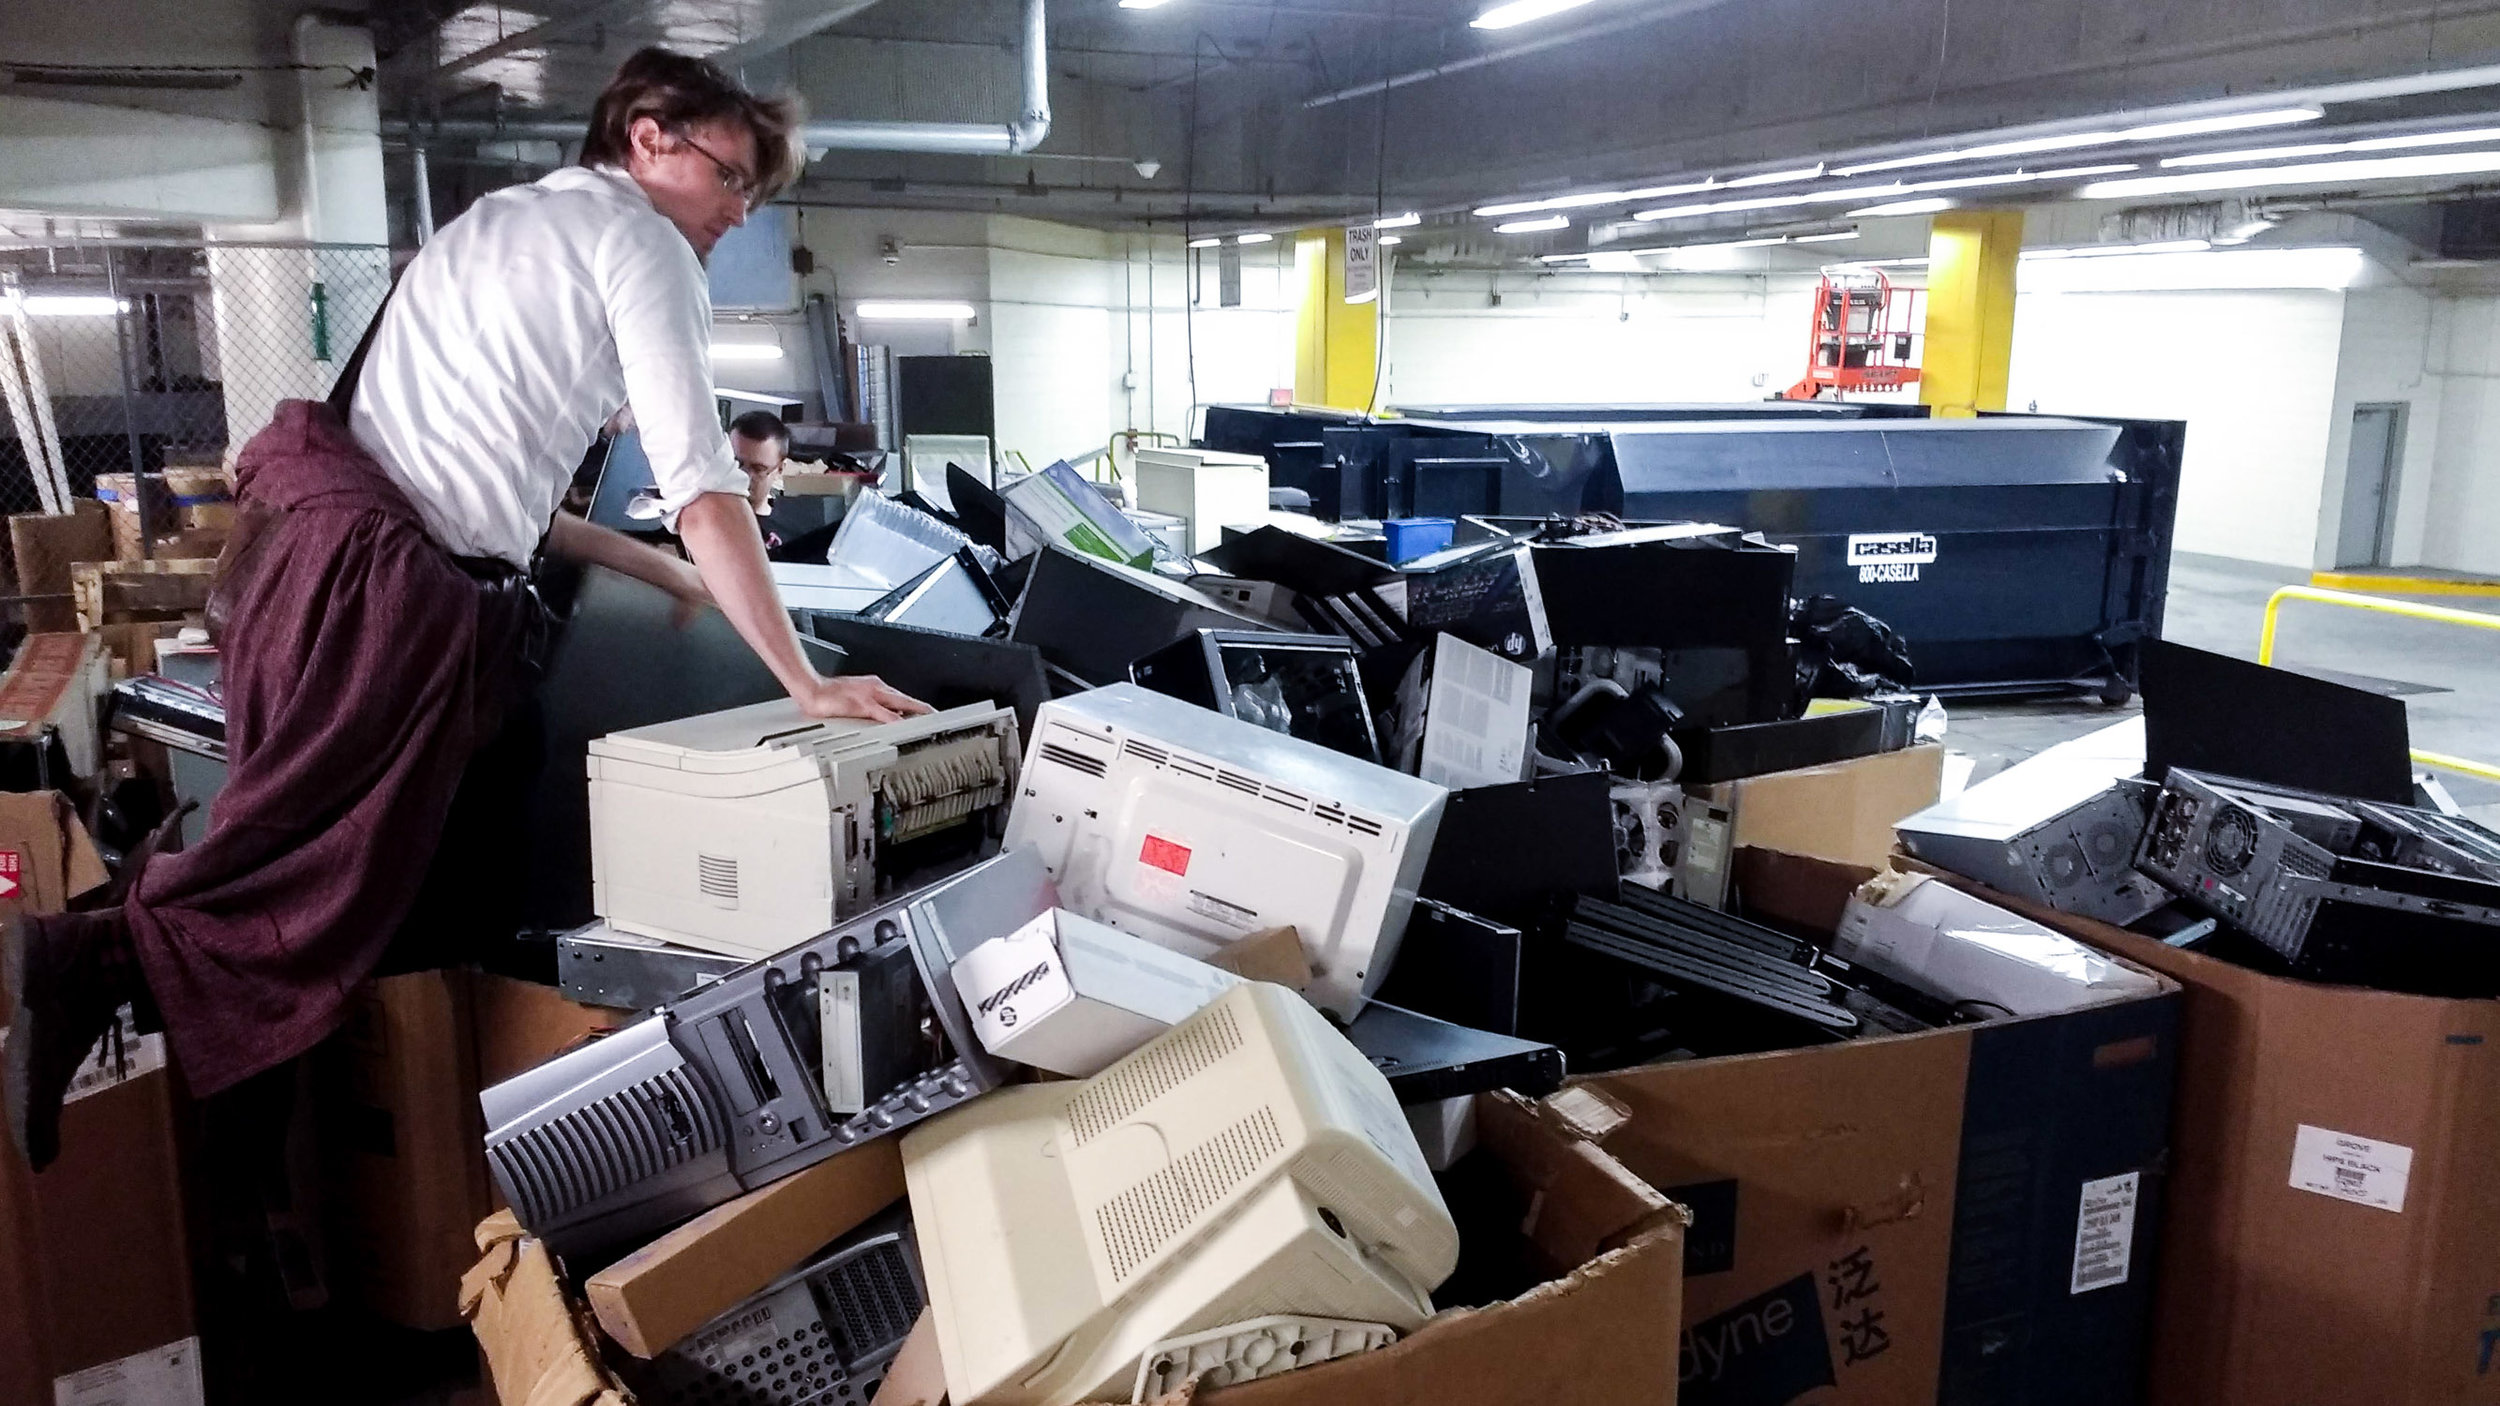 Max looks for lab equipment in a pile of discarded electronics in Cambridge, Massachusetts.